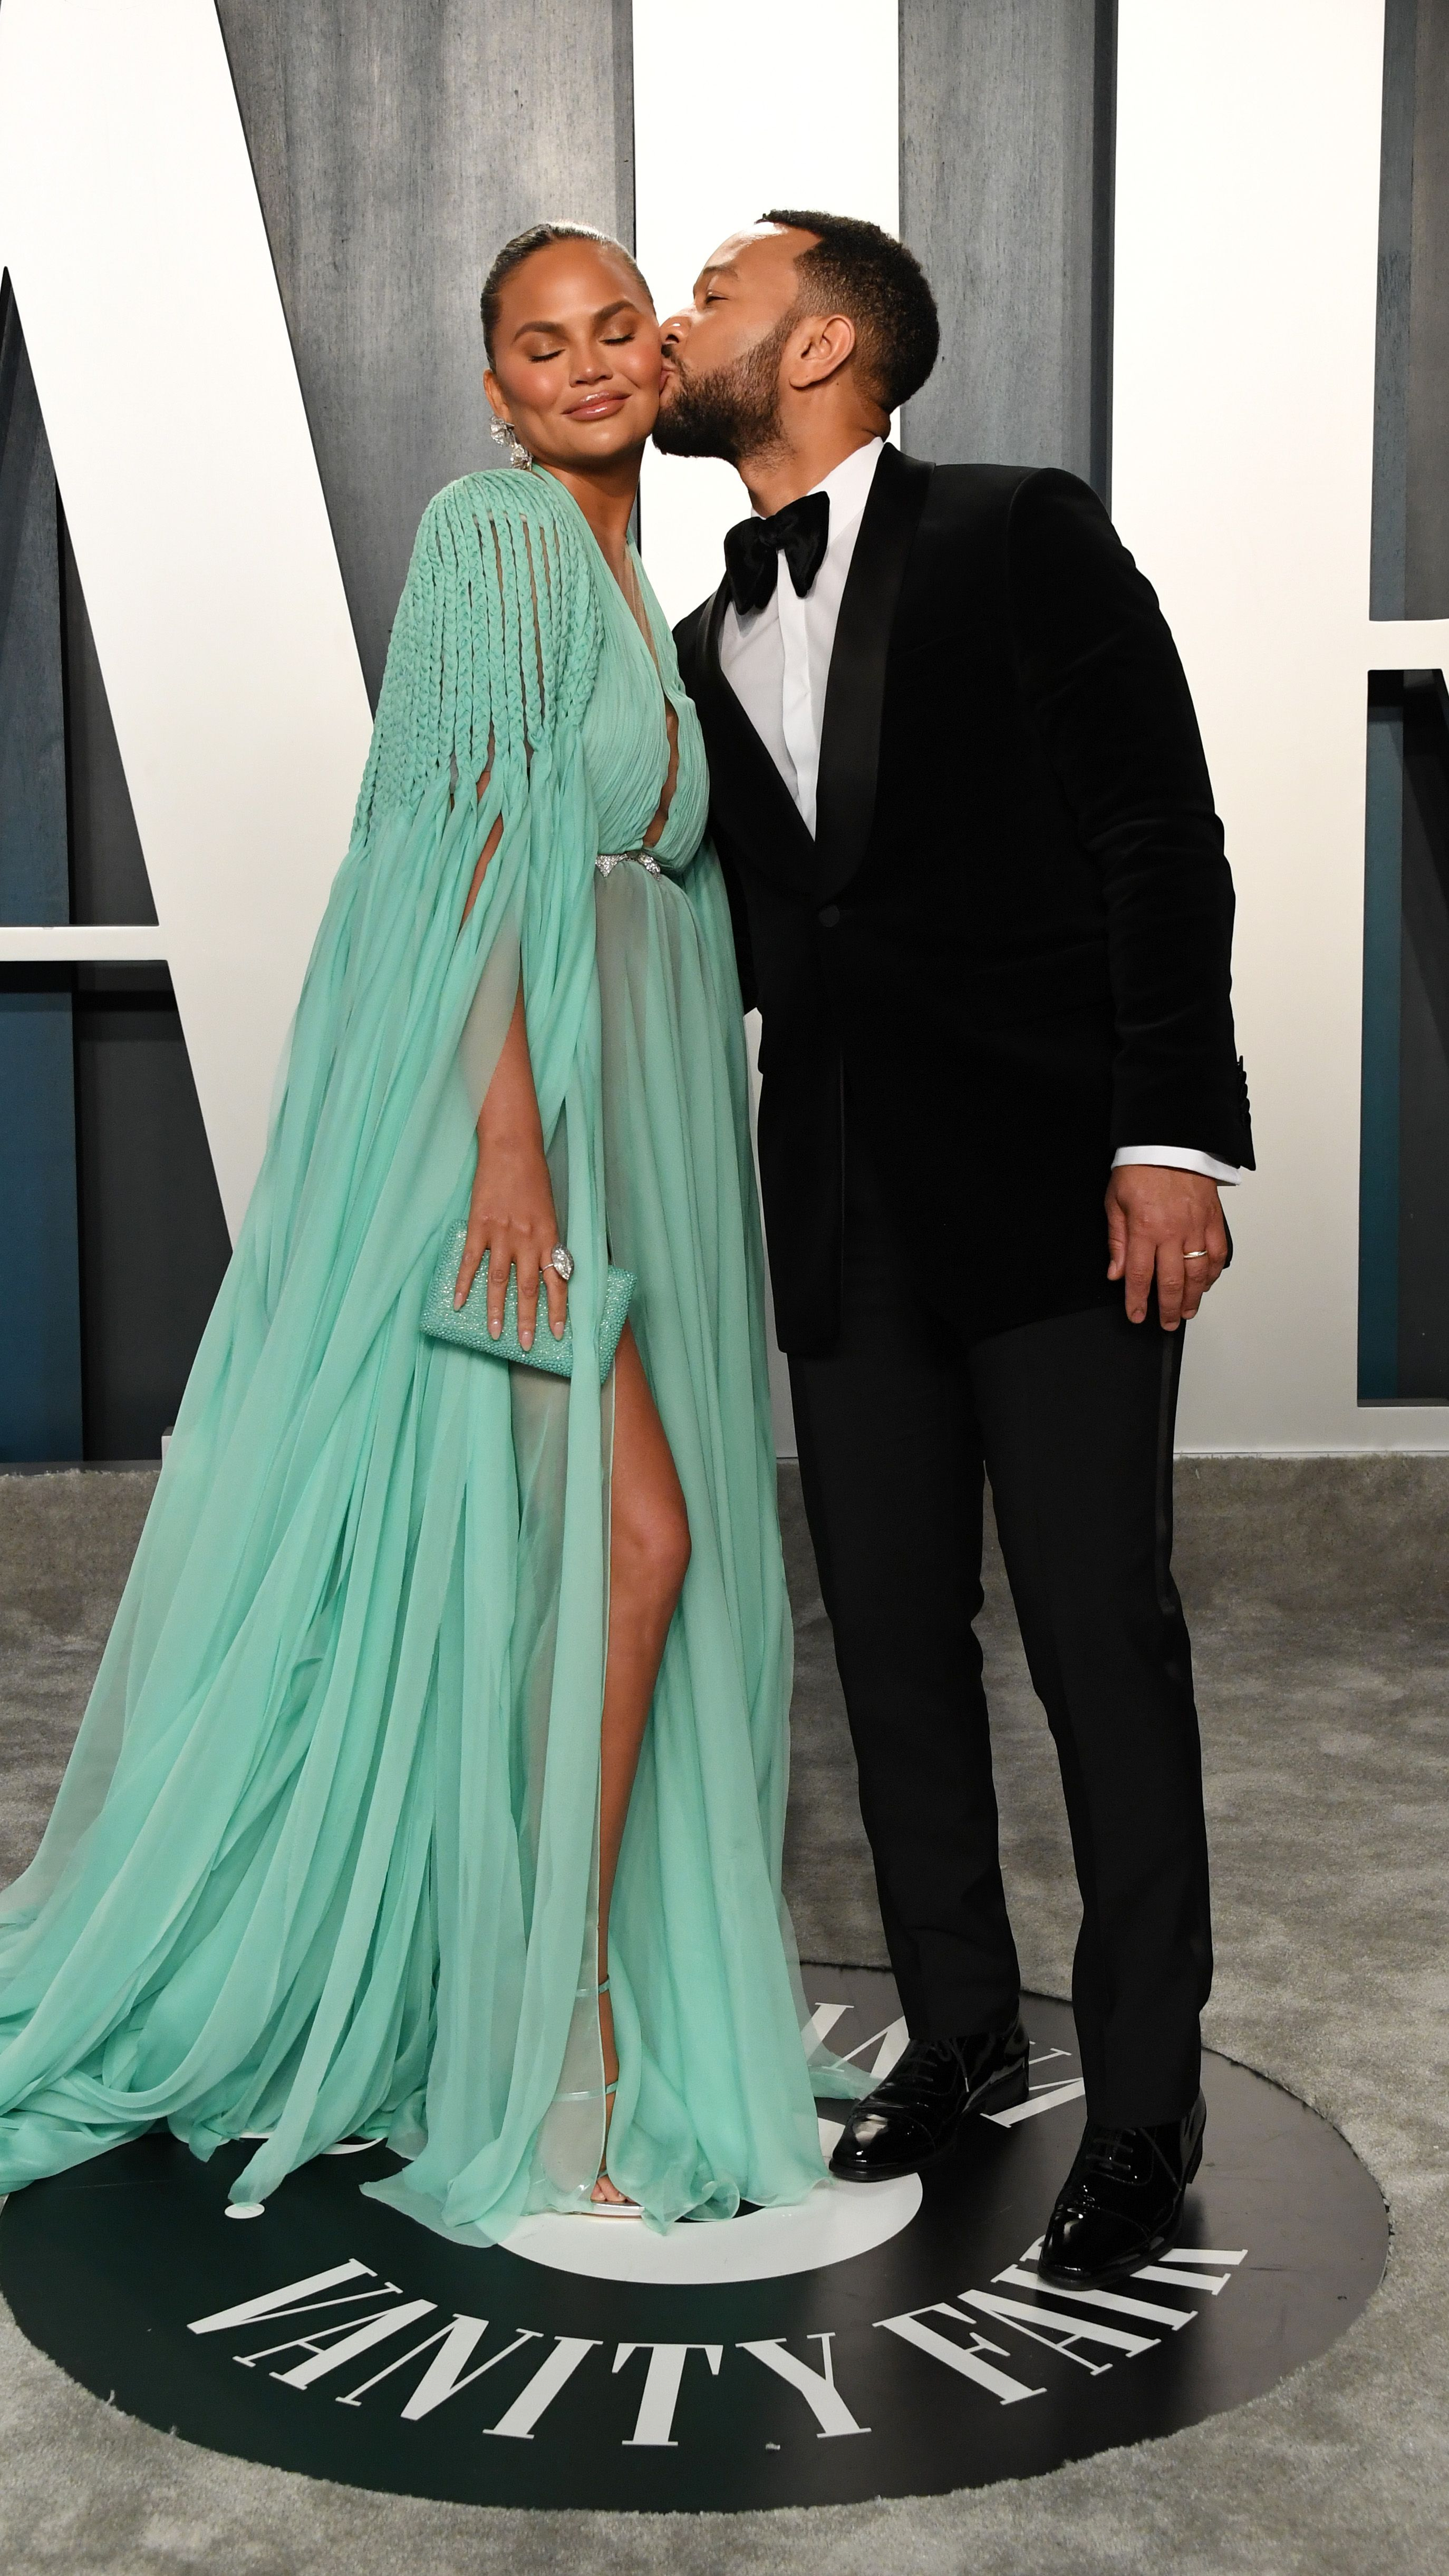 Chrissy Teigen and John Legend at the Vanity Fair Oscar party  Photo: Getty Images